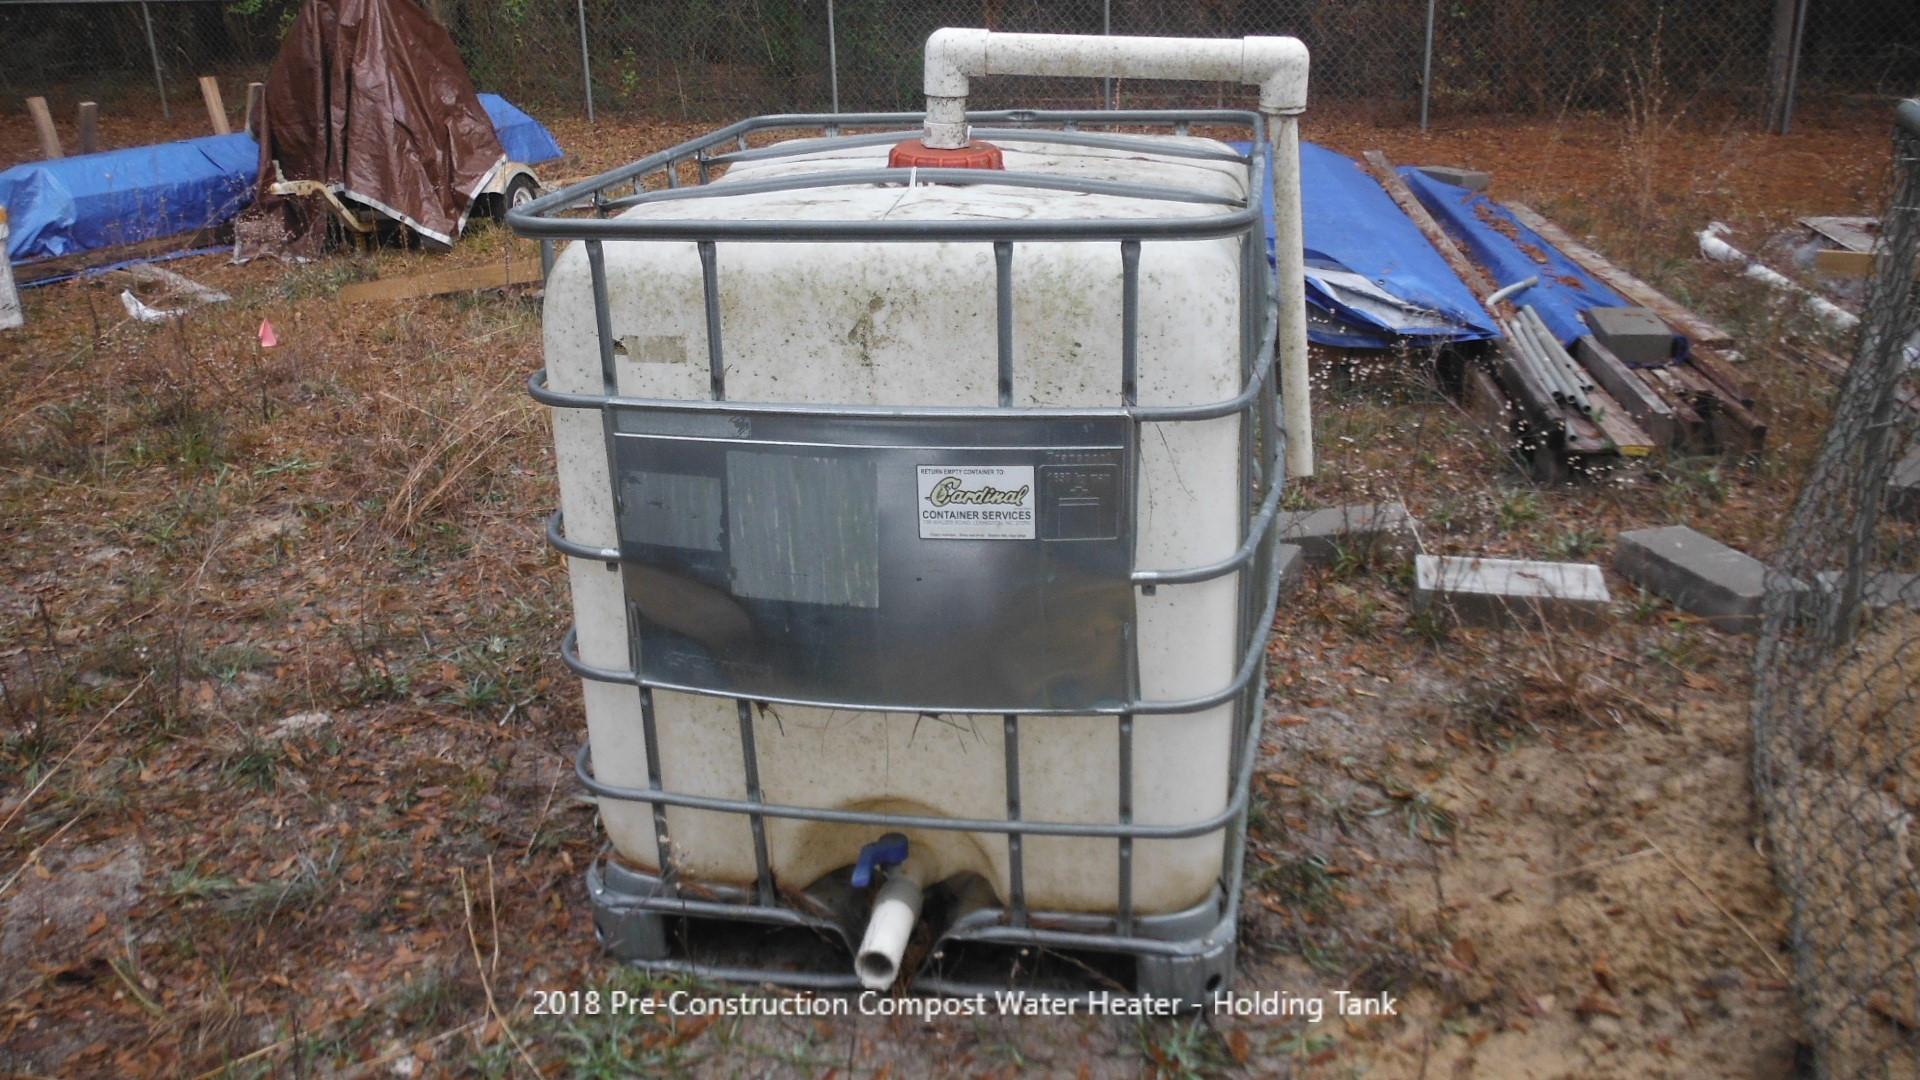 Pre Construction Compost Water Heater Holding Tank.jpg